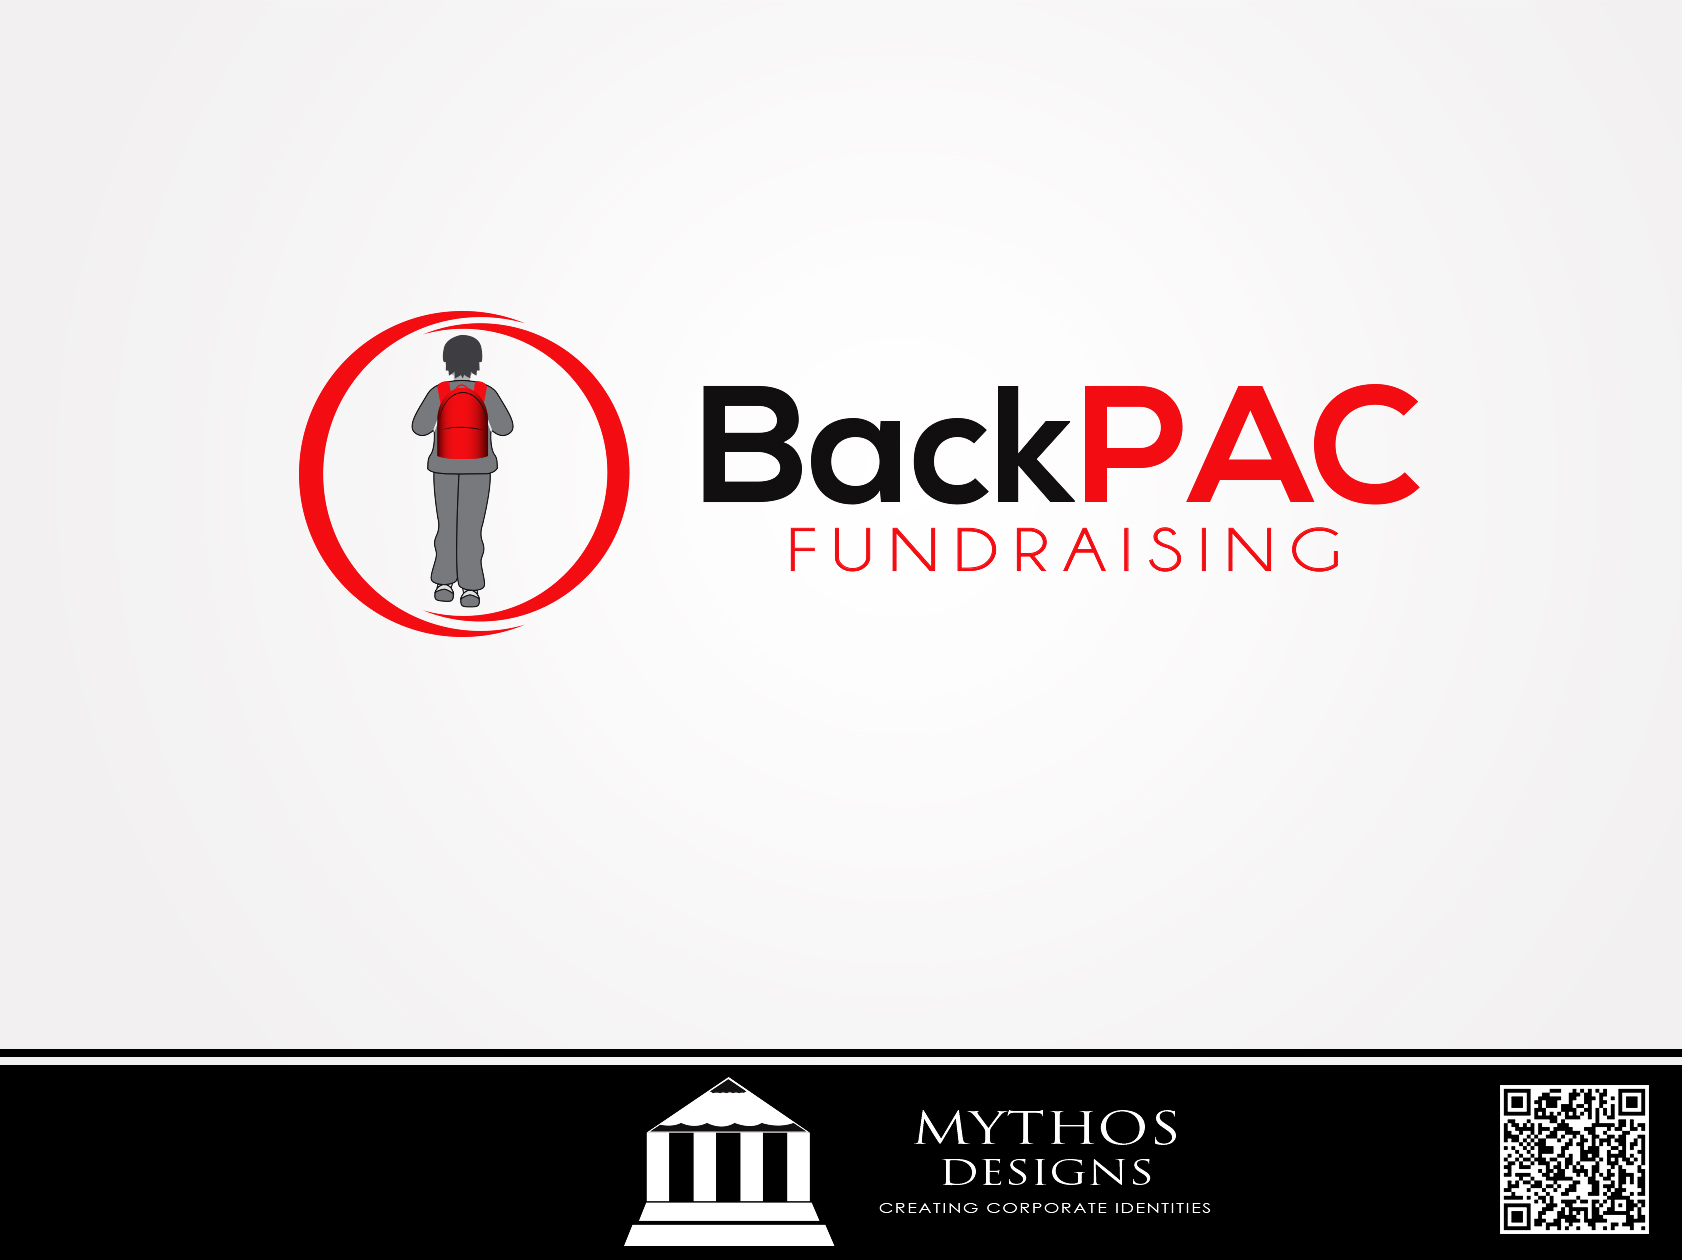 Logo Design by Mythos Designs - Entry No. 40 in the Logo Design Contest Imaginative Logo Design for BackPAC Fundraising.